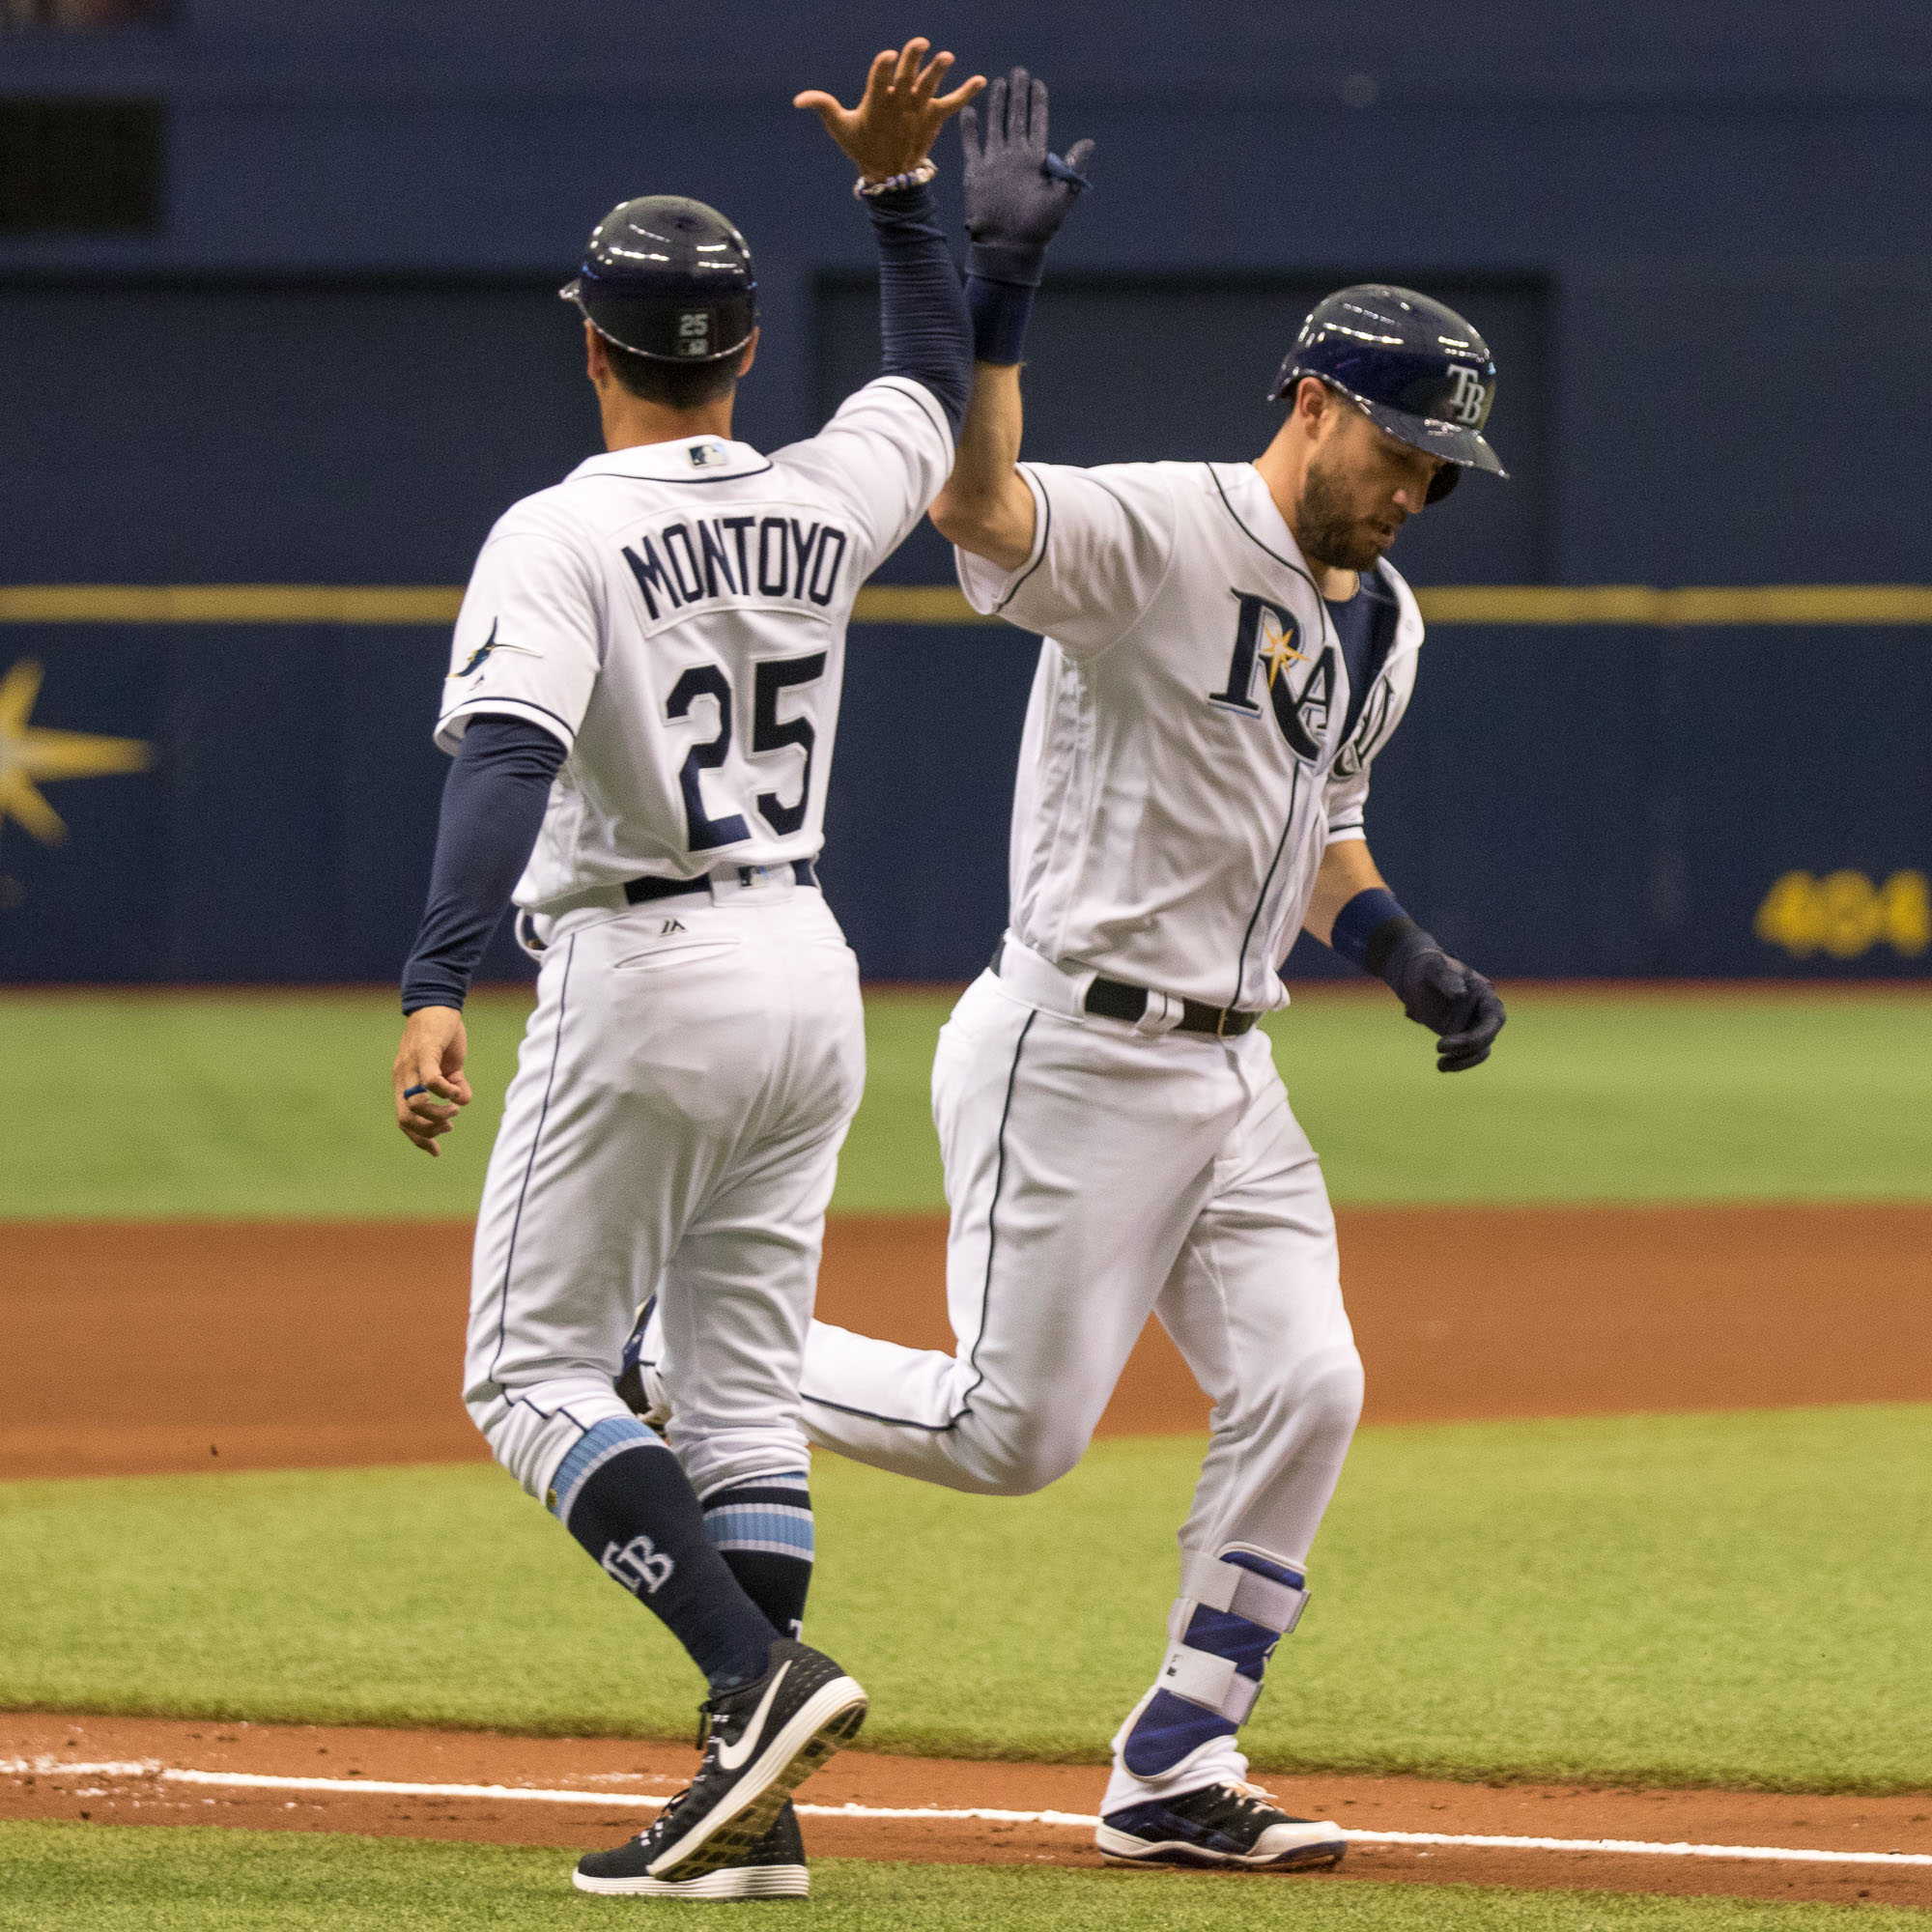 Plouffe high fives with Montoyo on his way to home plate./STEVEN MUNCIE